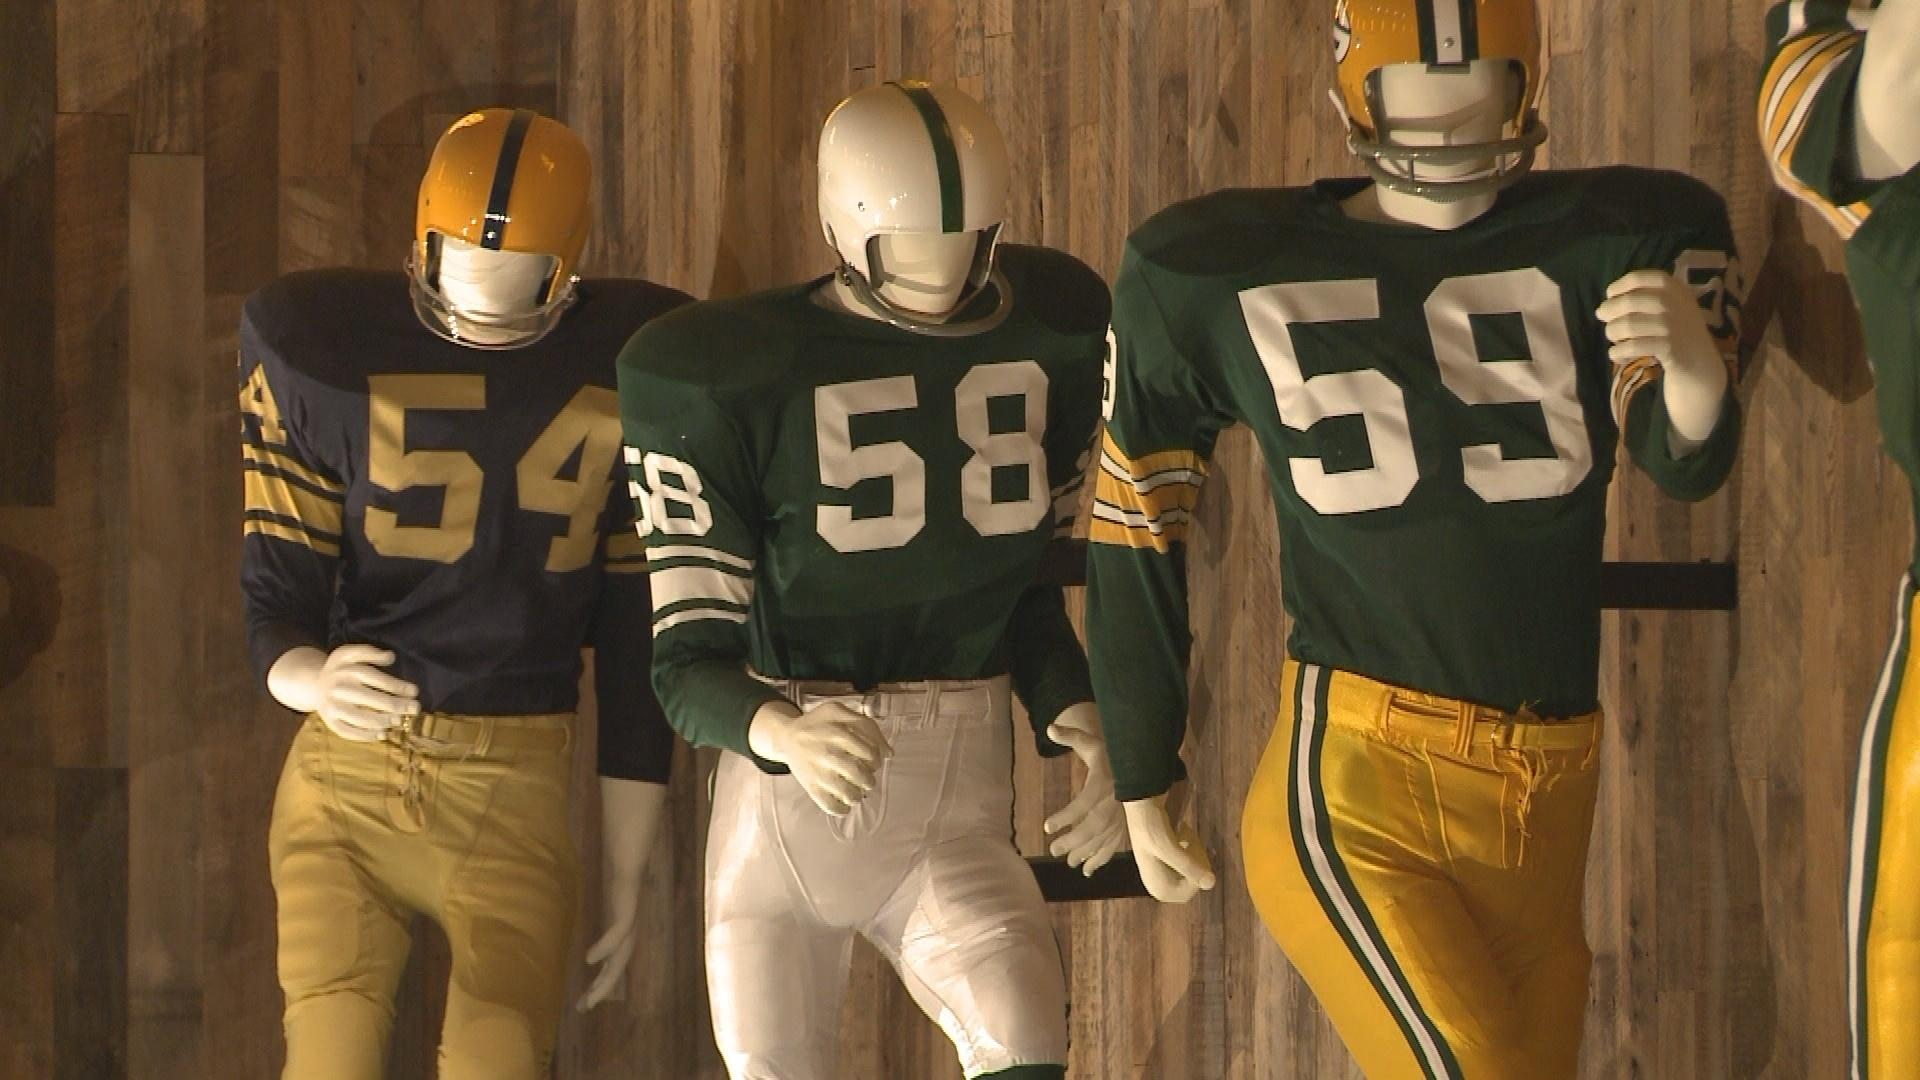 new products eb5fe 88b12 Green Bay Packers Uniforms Through the Years